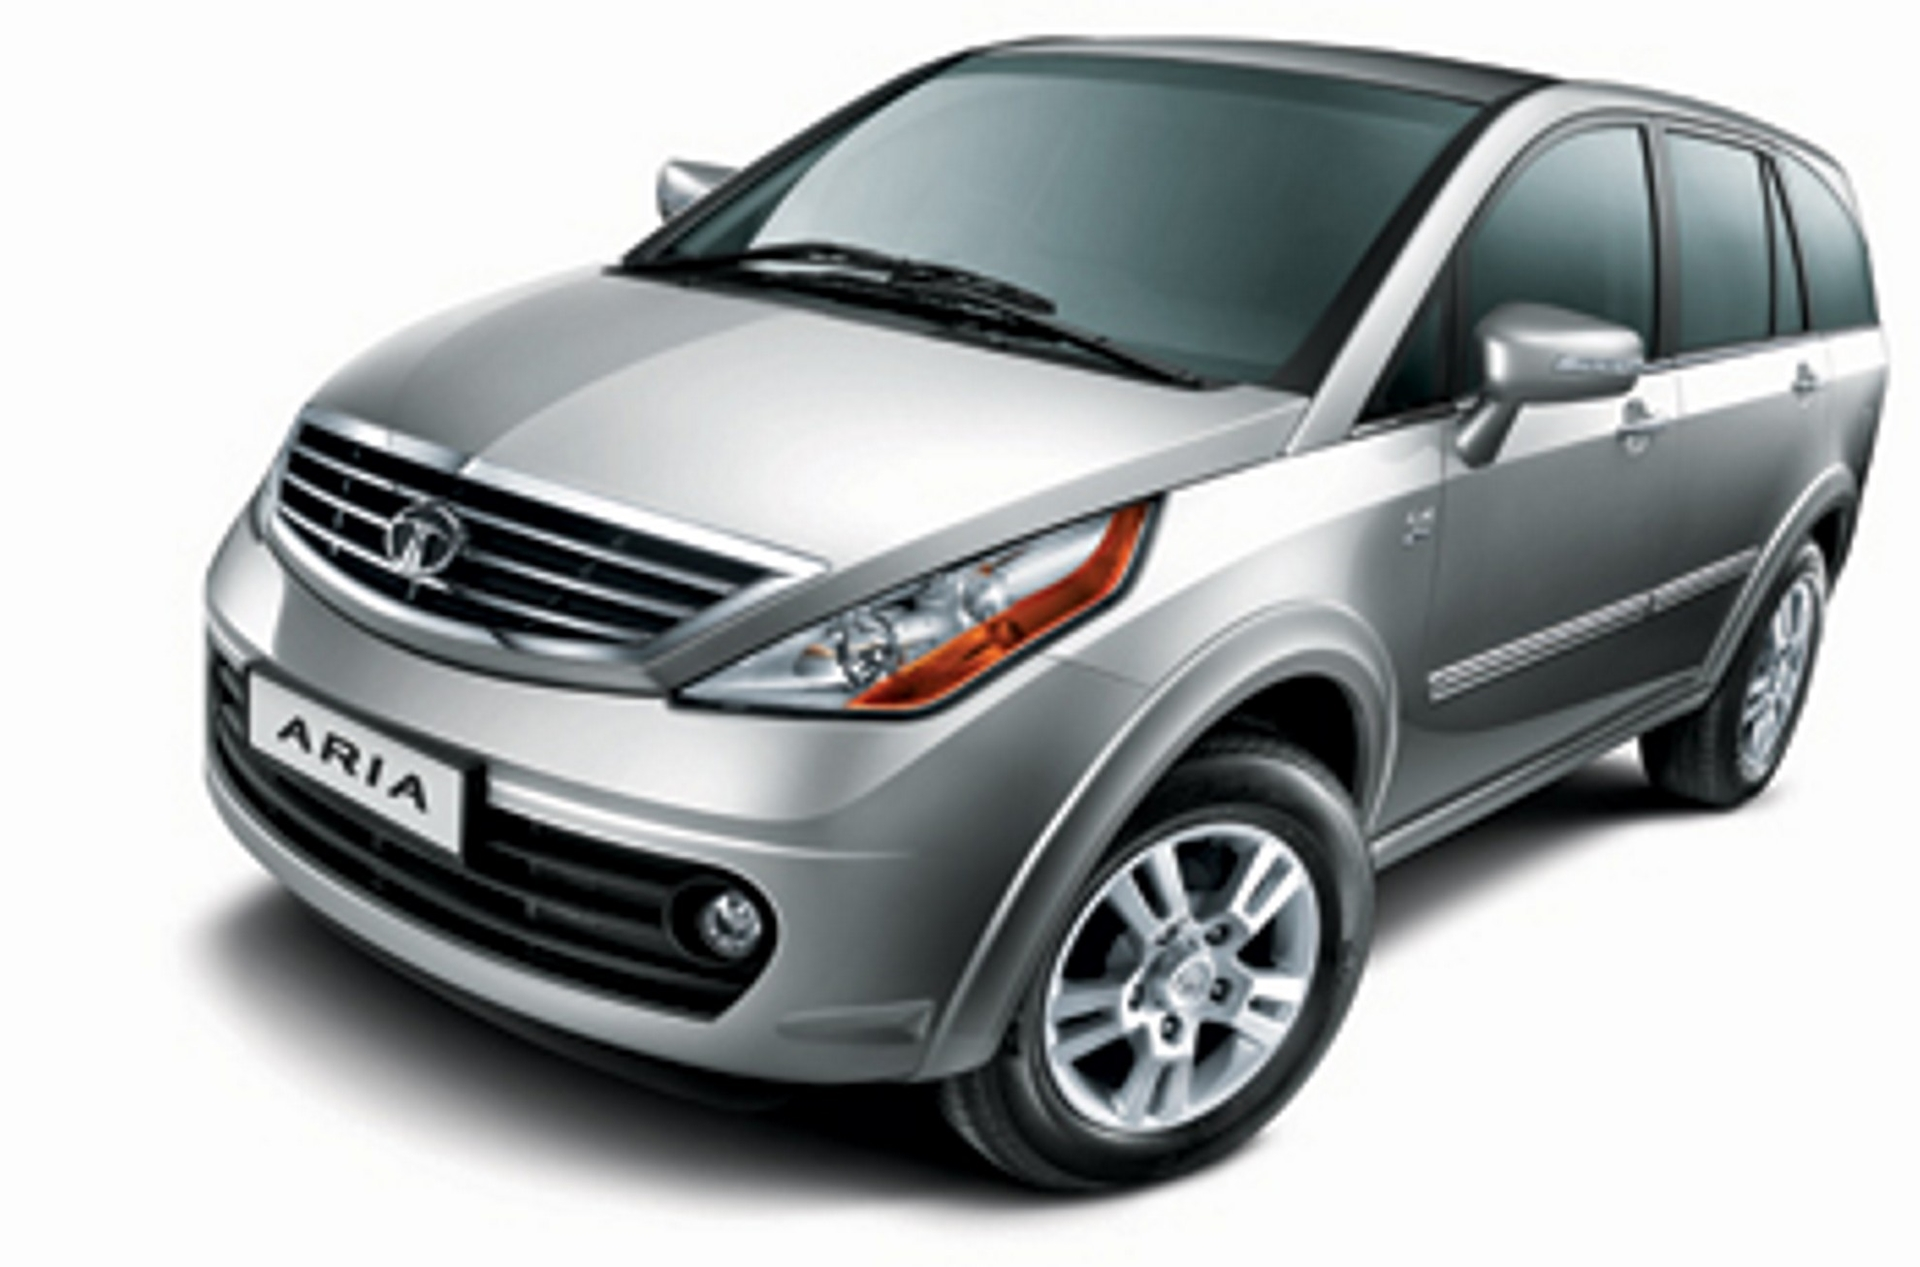 the new tata aria pure lx launched at a stunning price